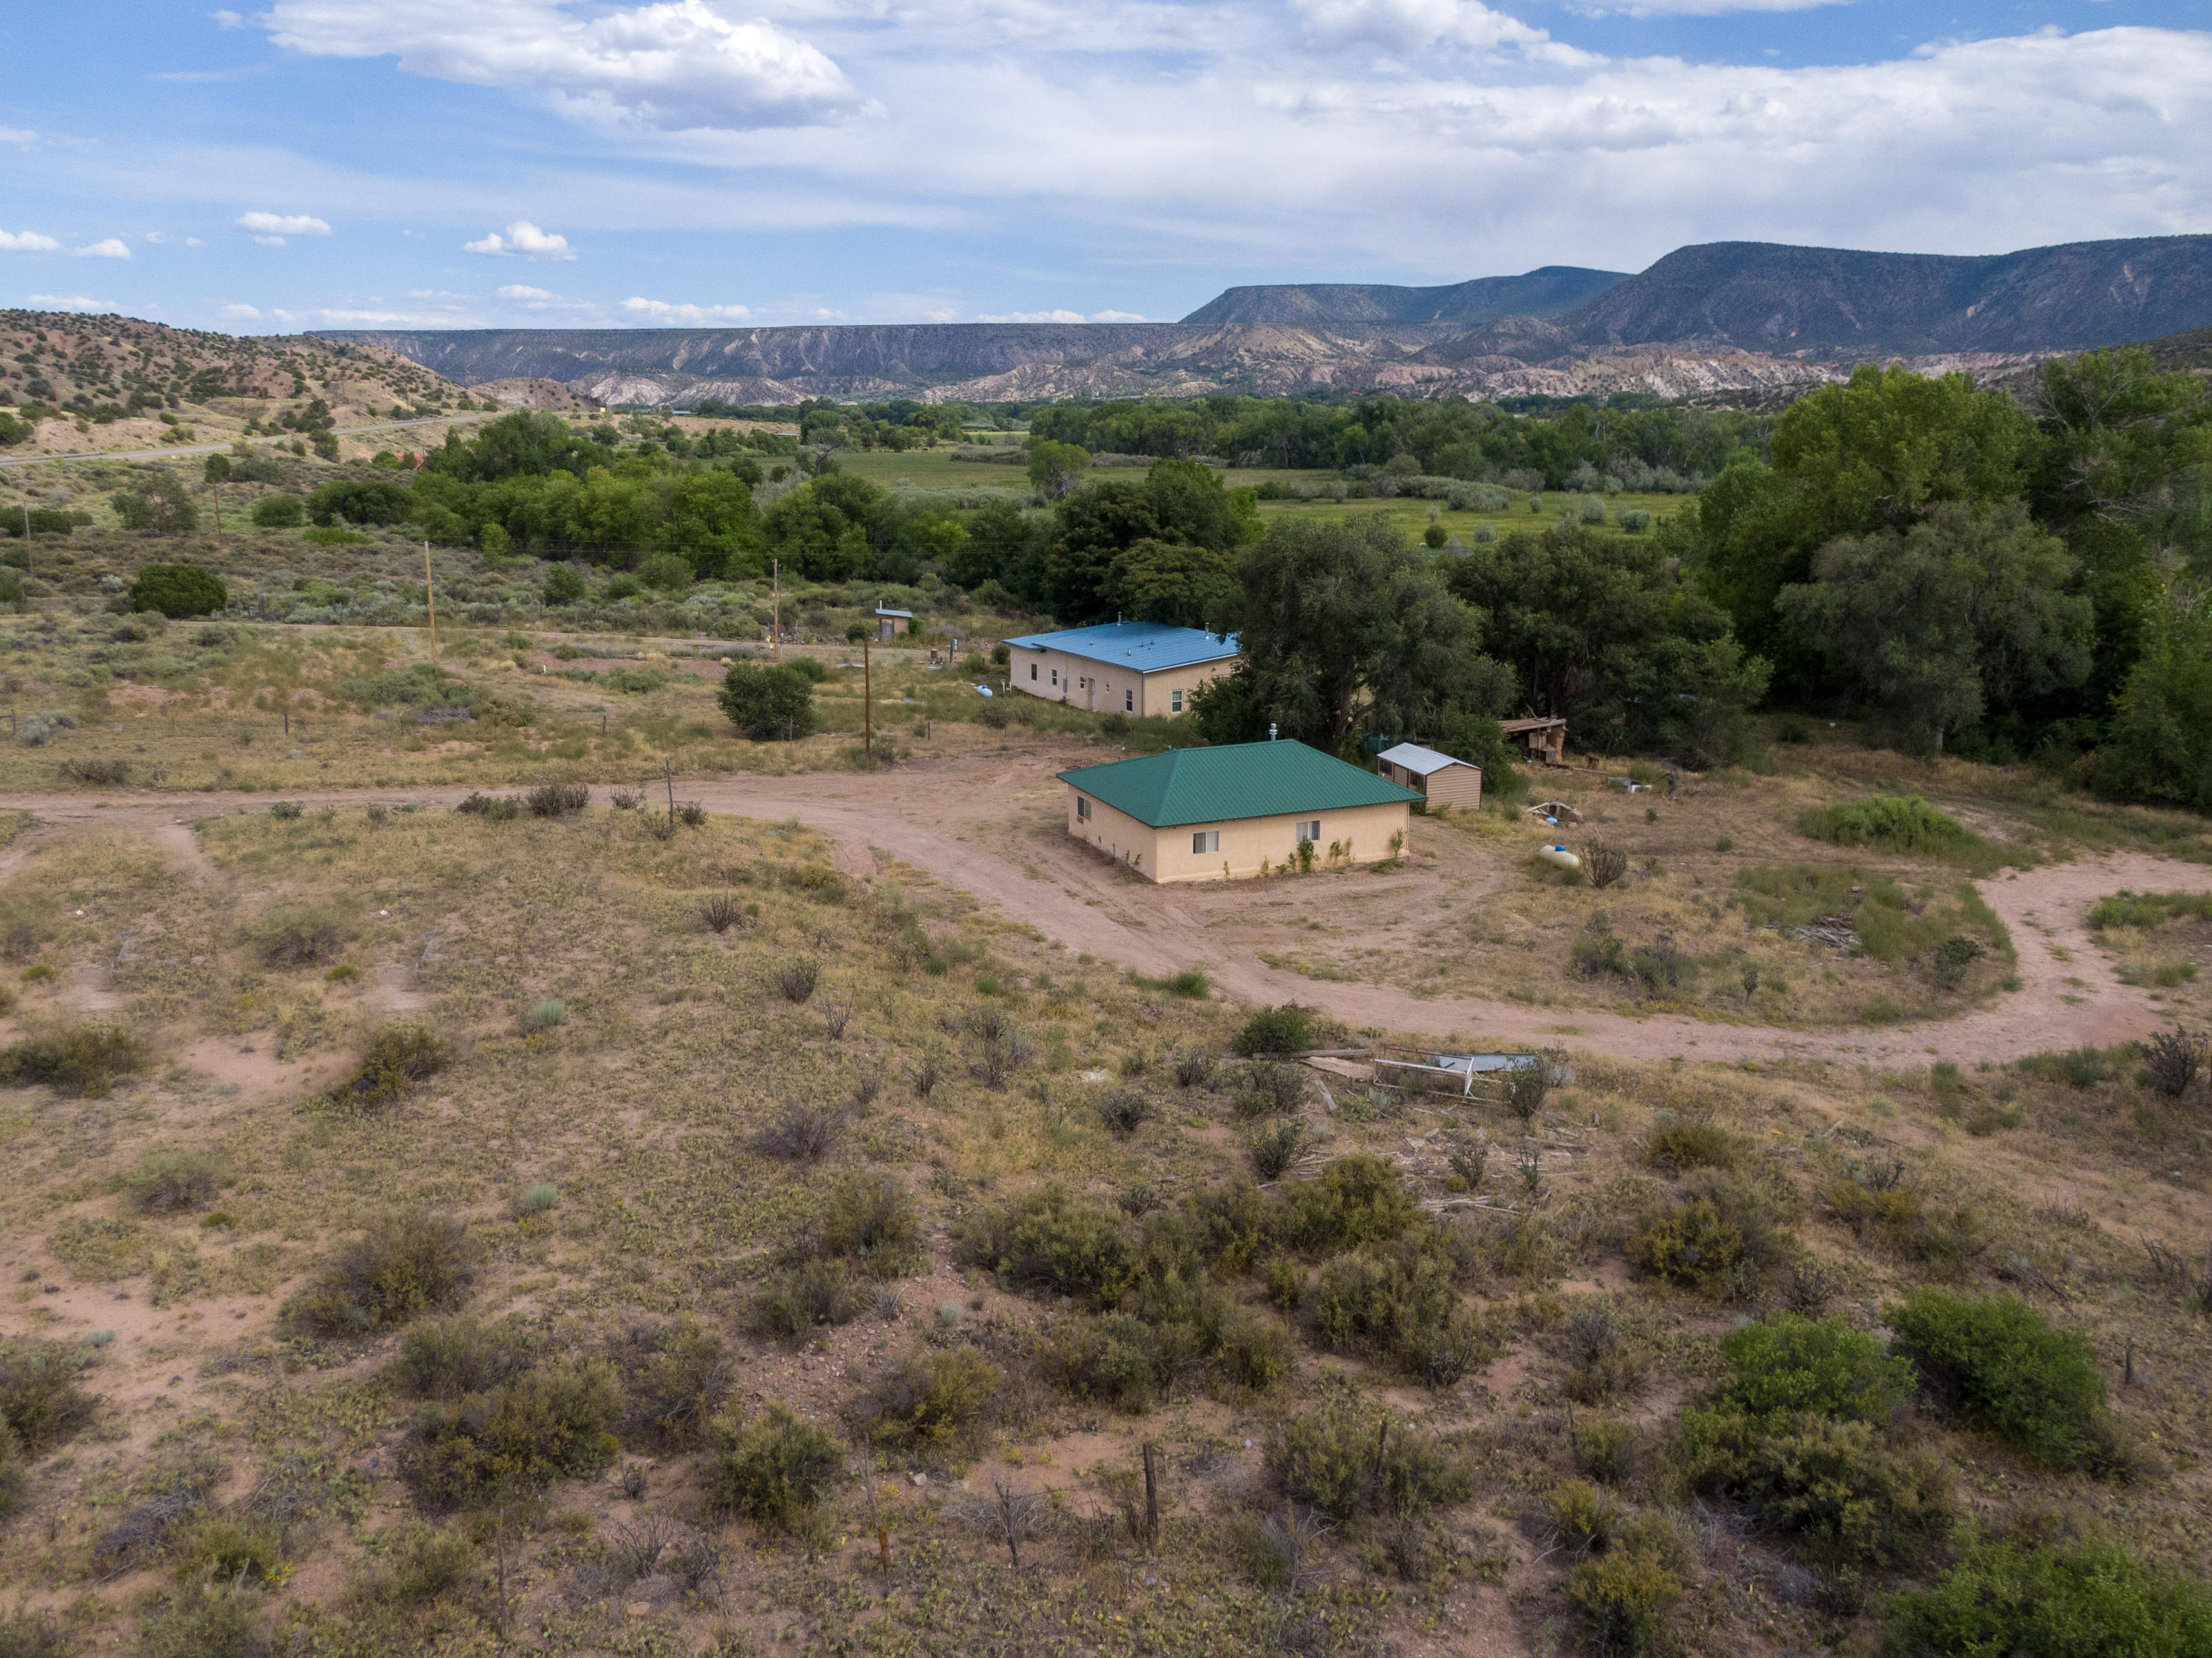 21491 US HWY 84, Abiquiu, NM 87510 - Abiquiu, NM real estate listing